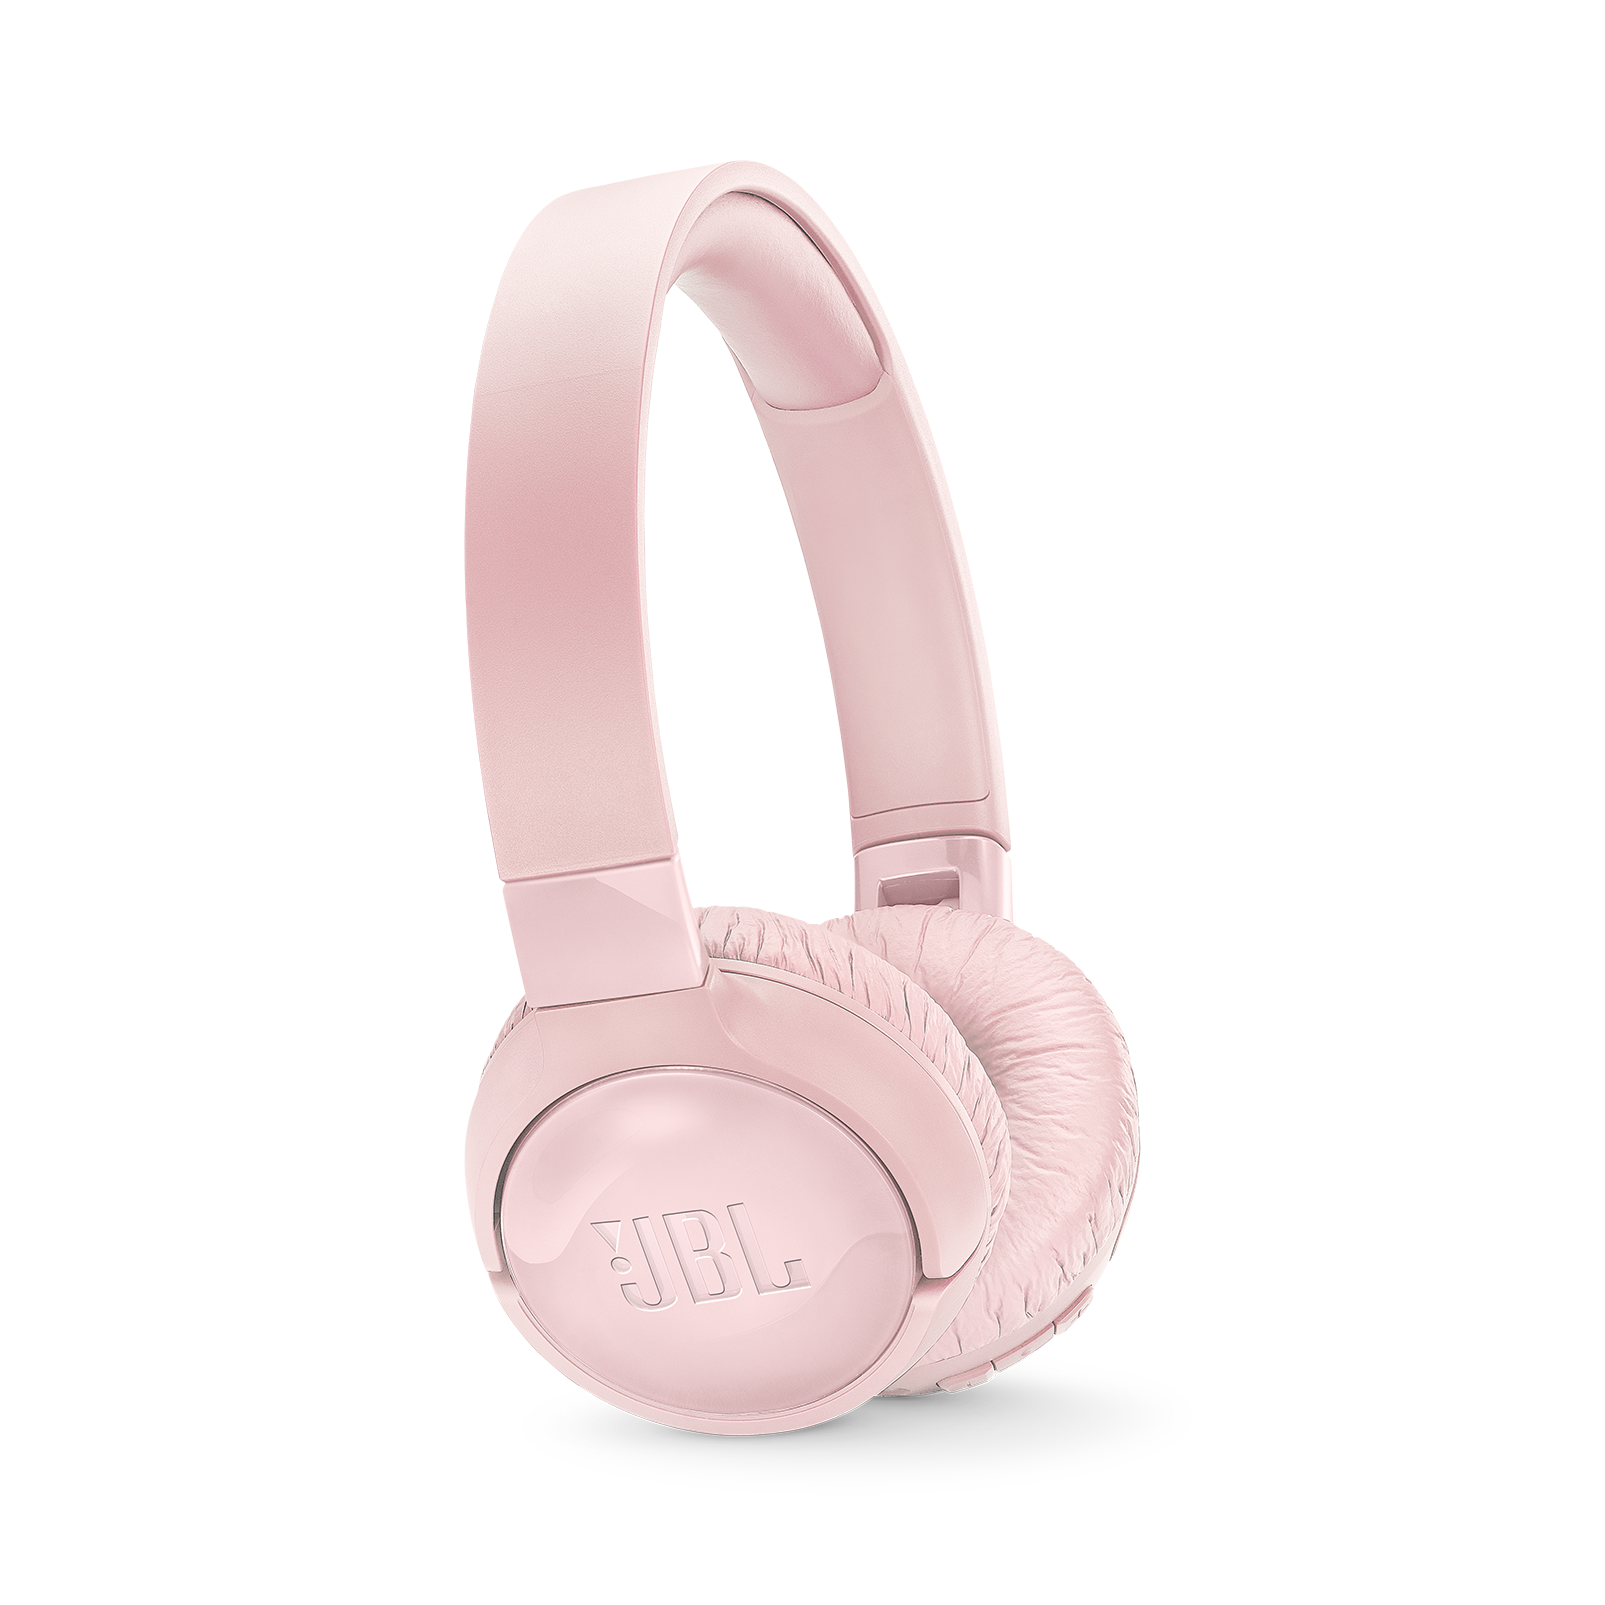 JBL TUNE 600BTNC - Pink - Wireless, on-ear, active noise-cancelling headphones. - Hero